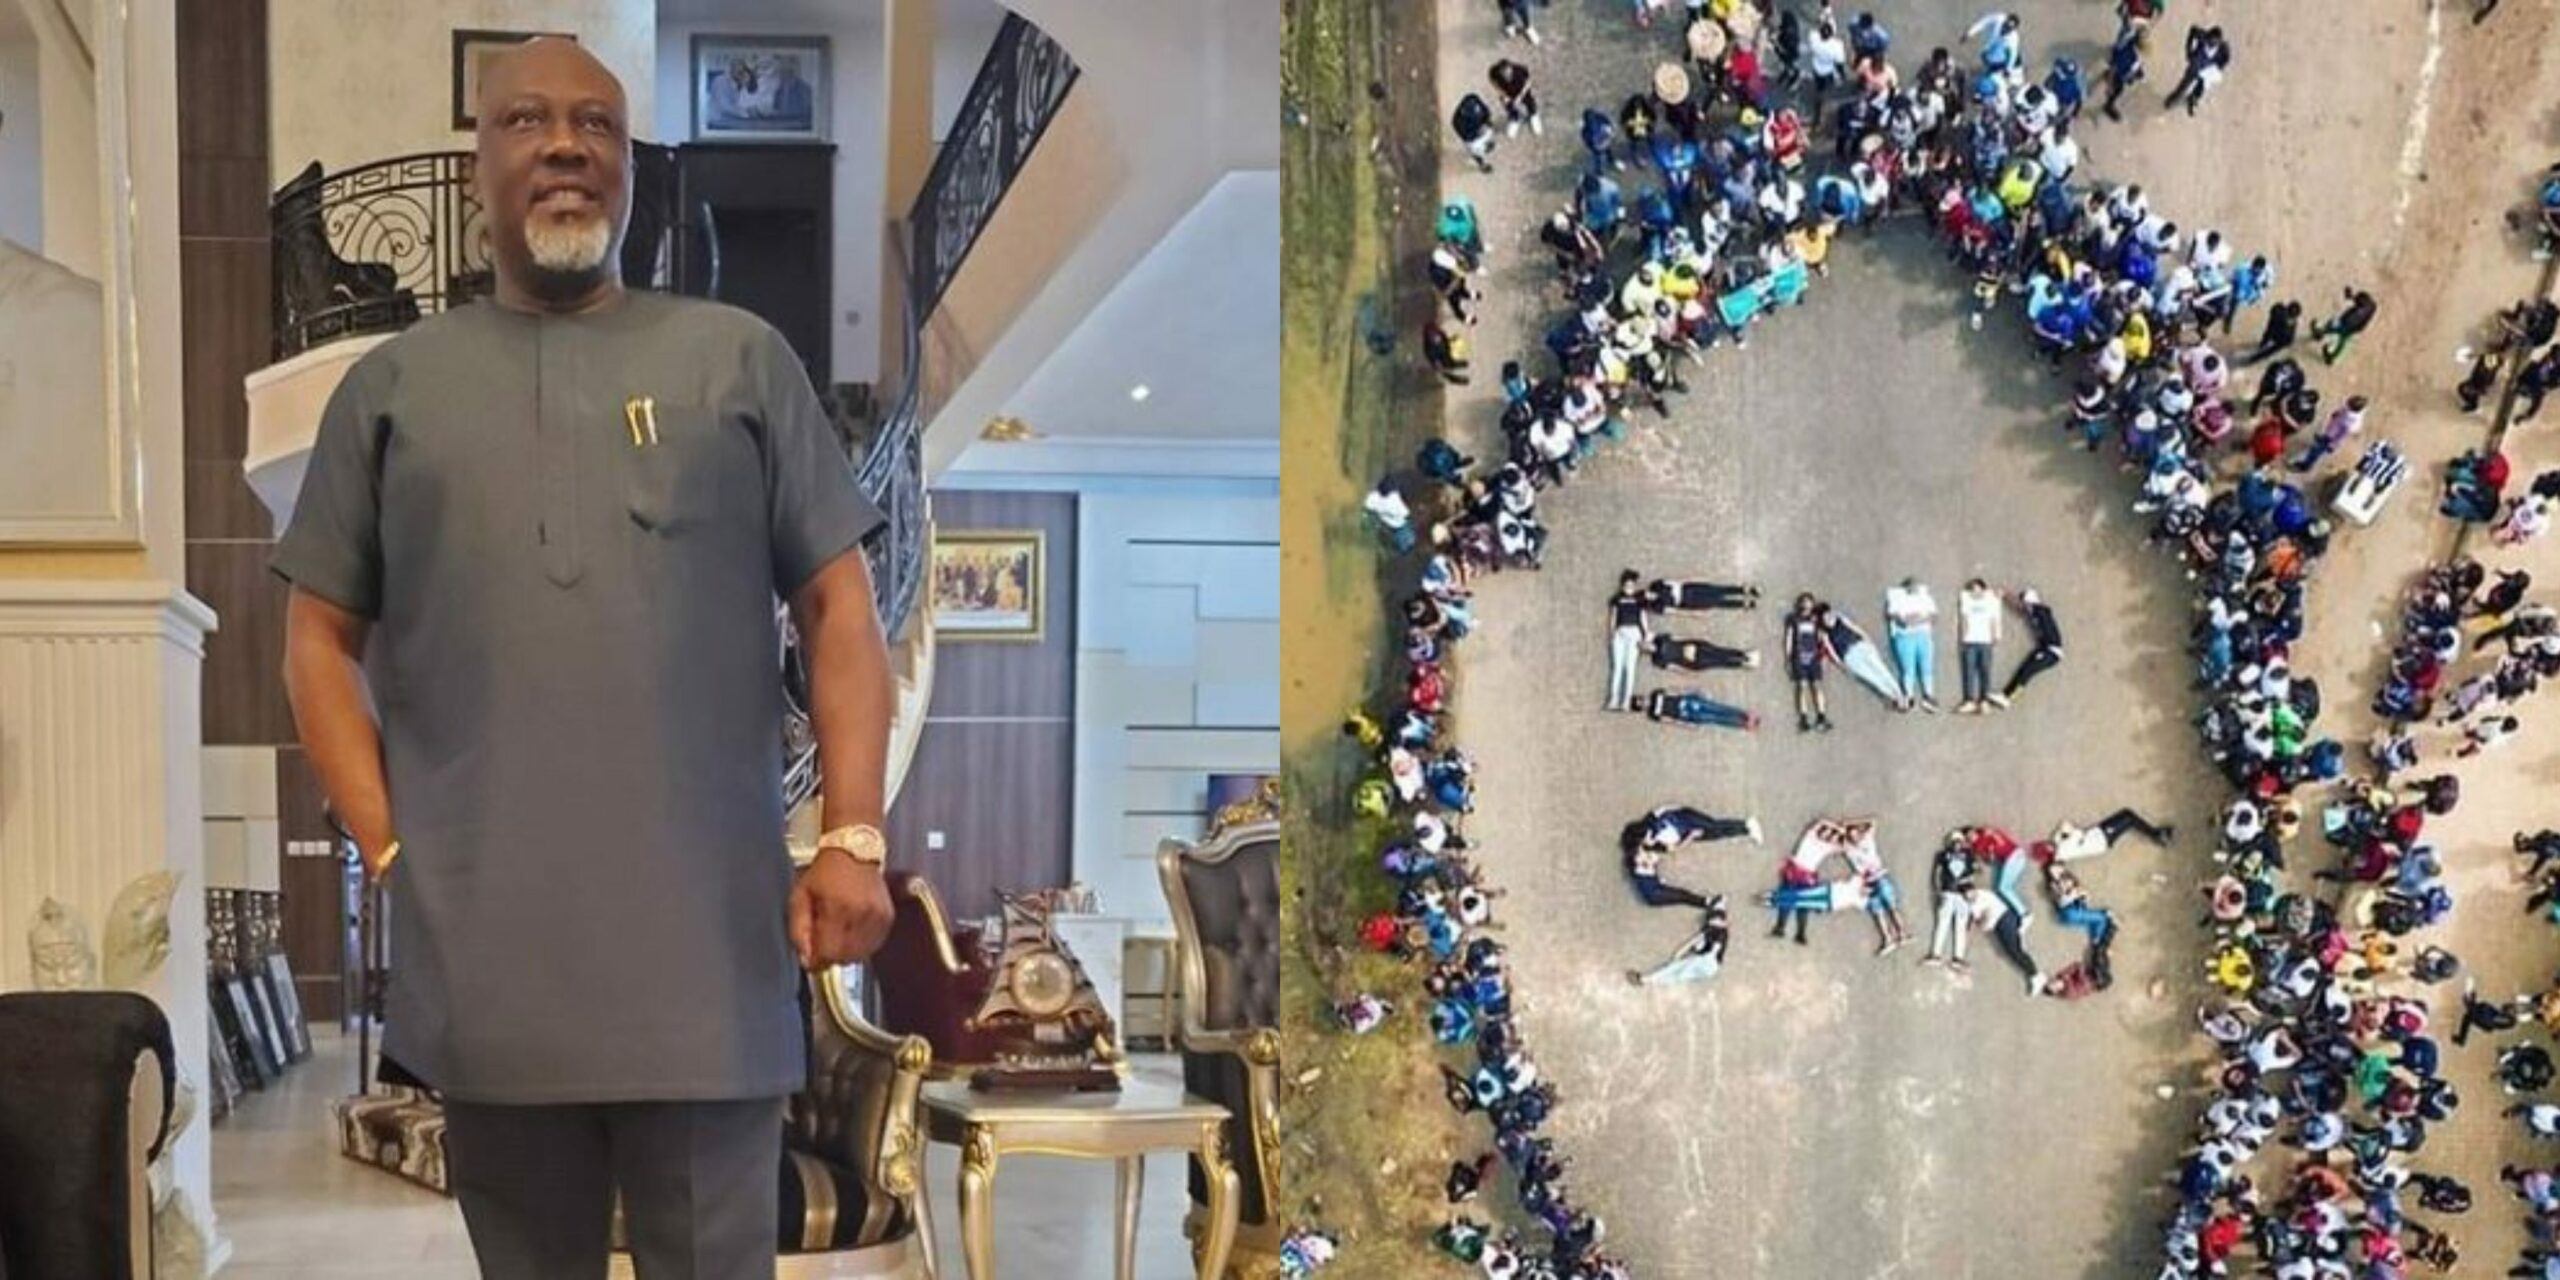 Work with the people or risk a revolution - Dino Melaye warns Buhari